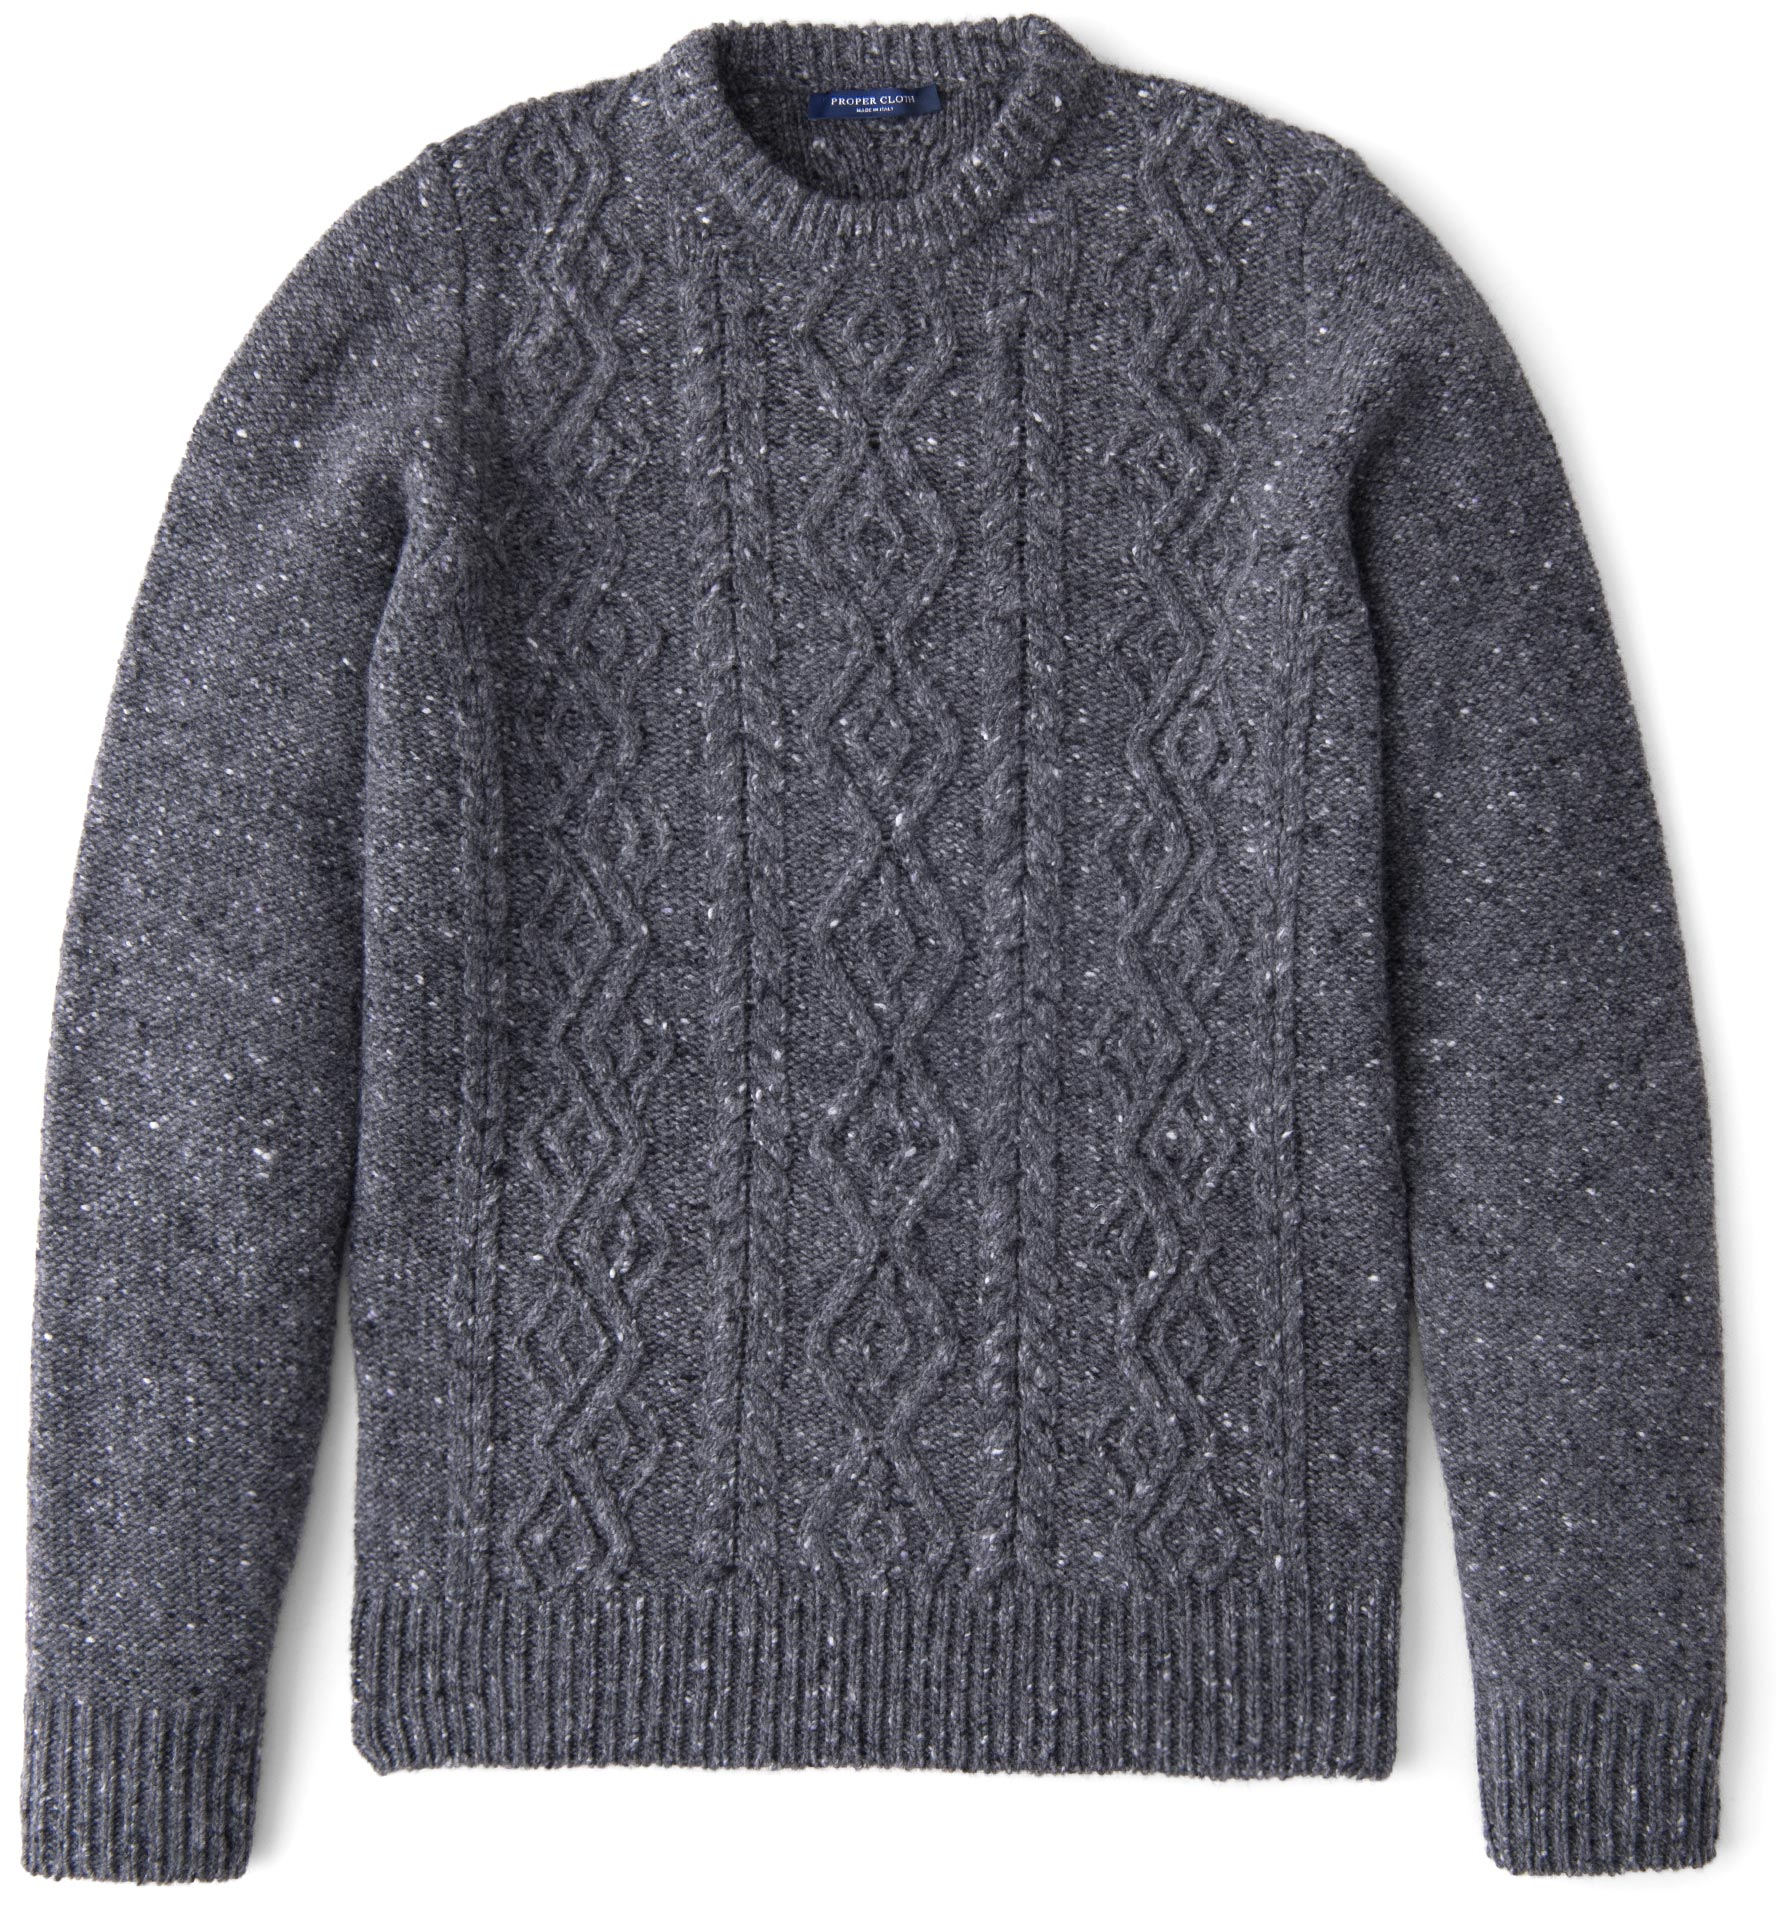 Zoom Image of Grey Donegal Wool and Cashmere Aran Sweater